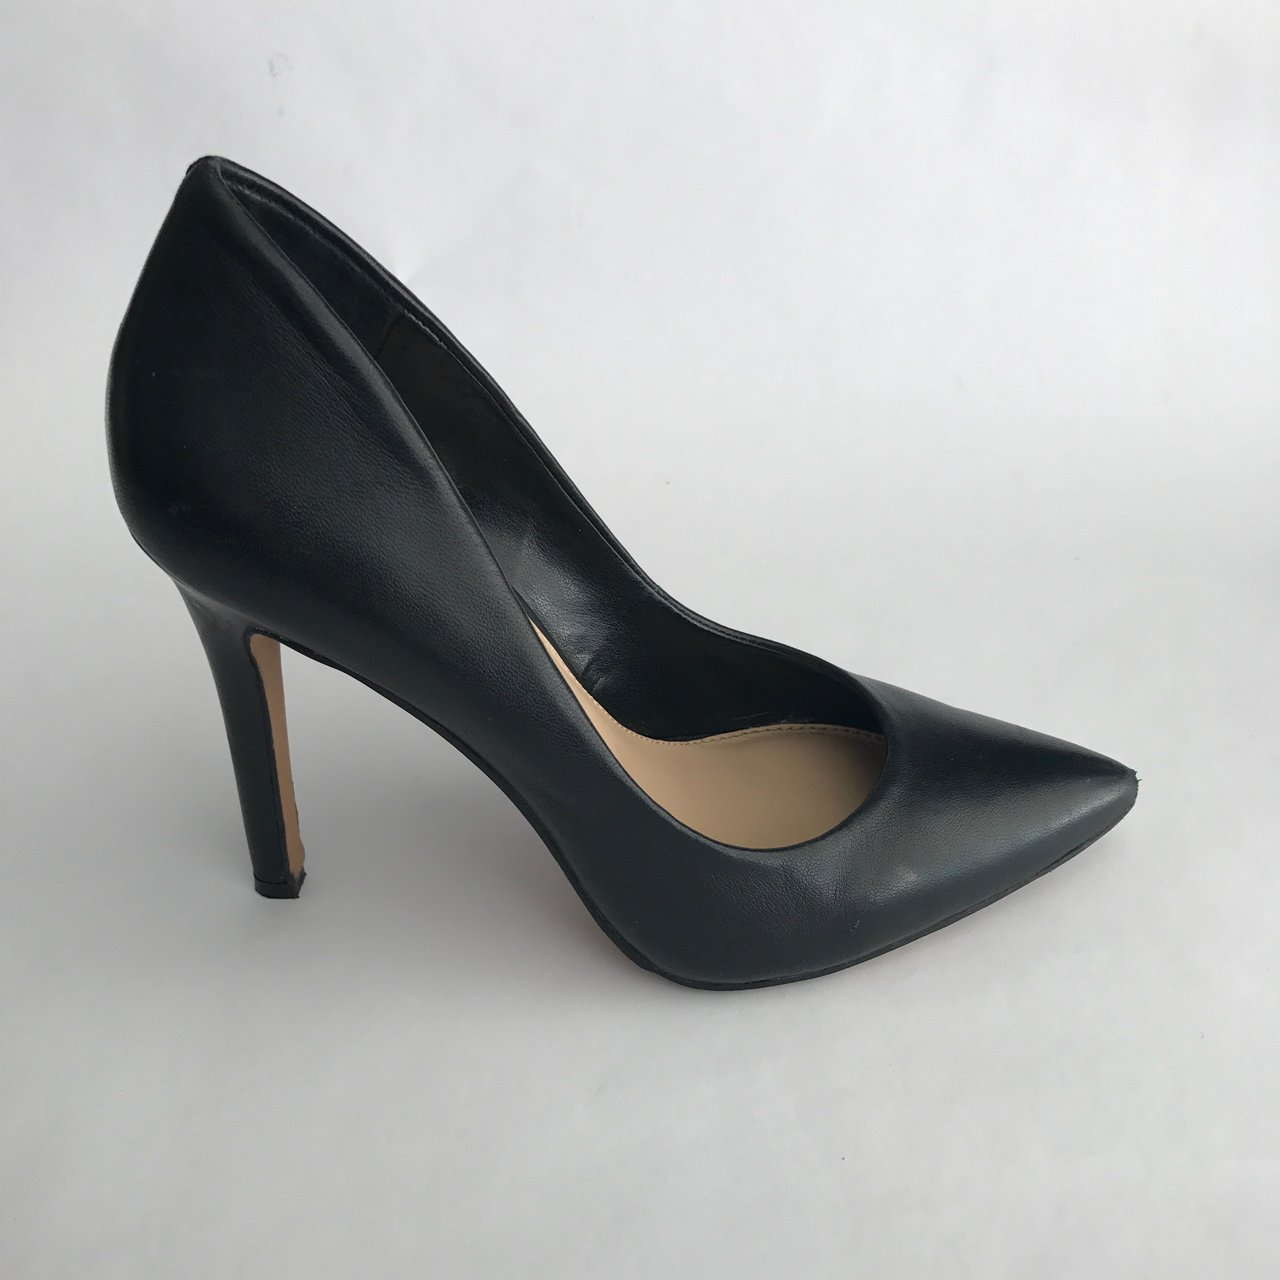 5d4120f2b556a @resaletherapy714. last year. Huntington Beach, CA, USA. Vince Camuto black  pumps ...